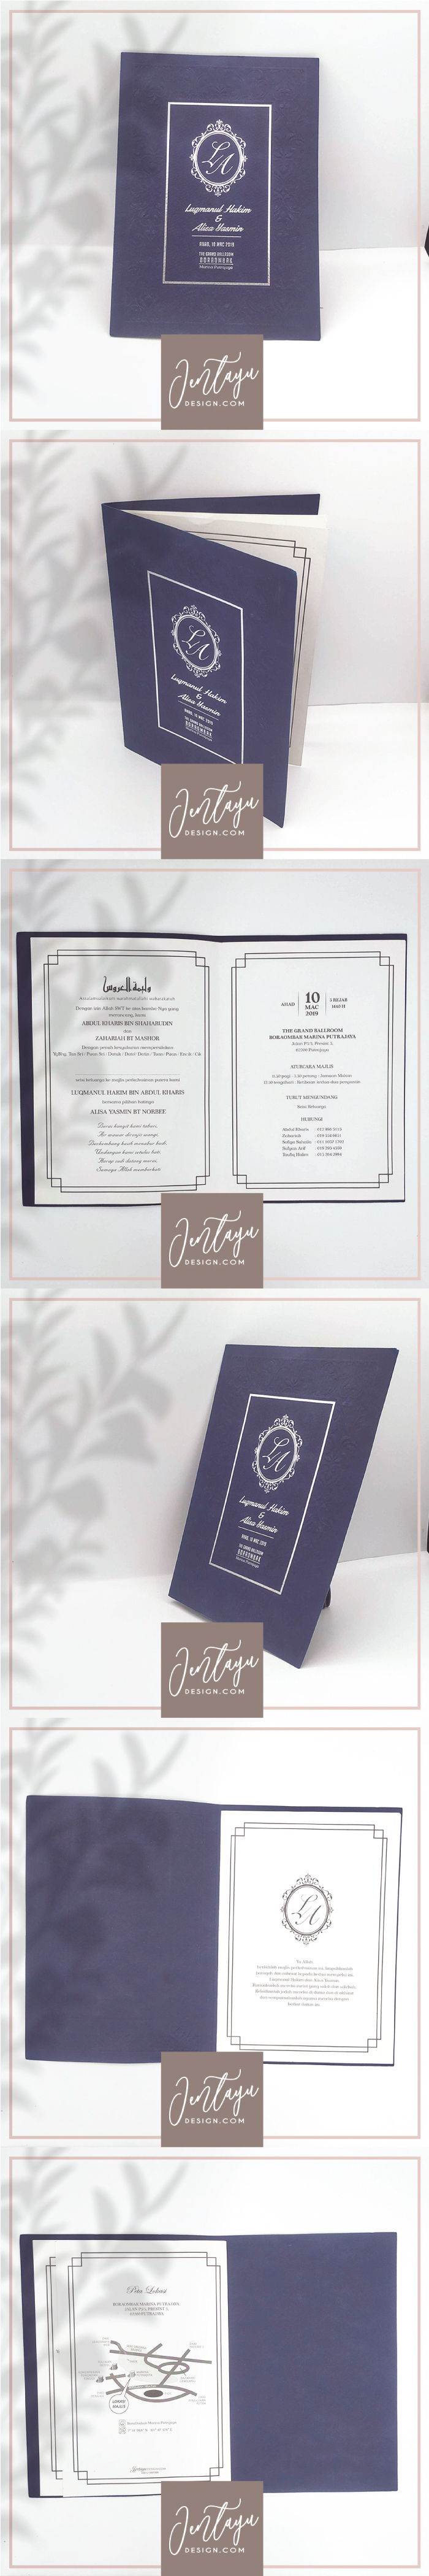 jentayu design kad kahwin formal vip royal berlipat metallic folded wedding cards A4 A5